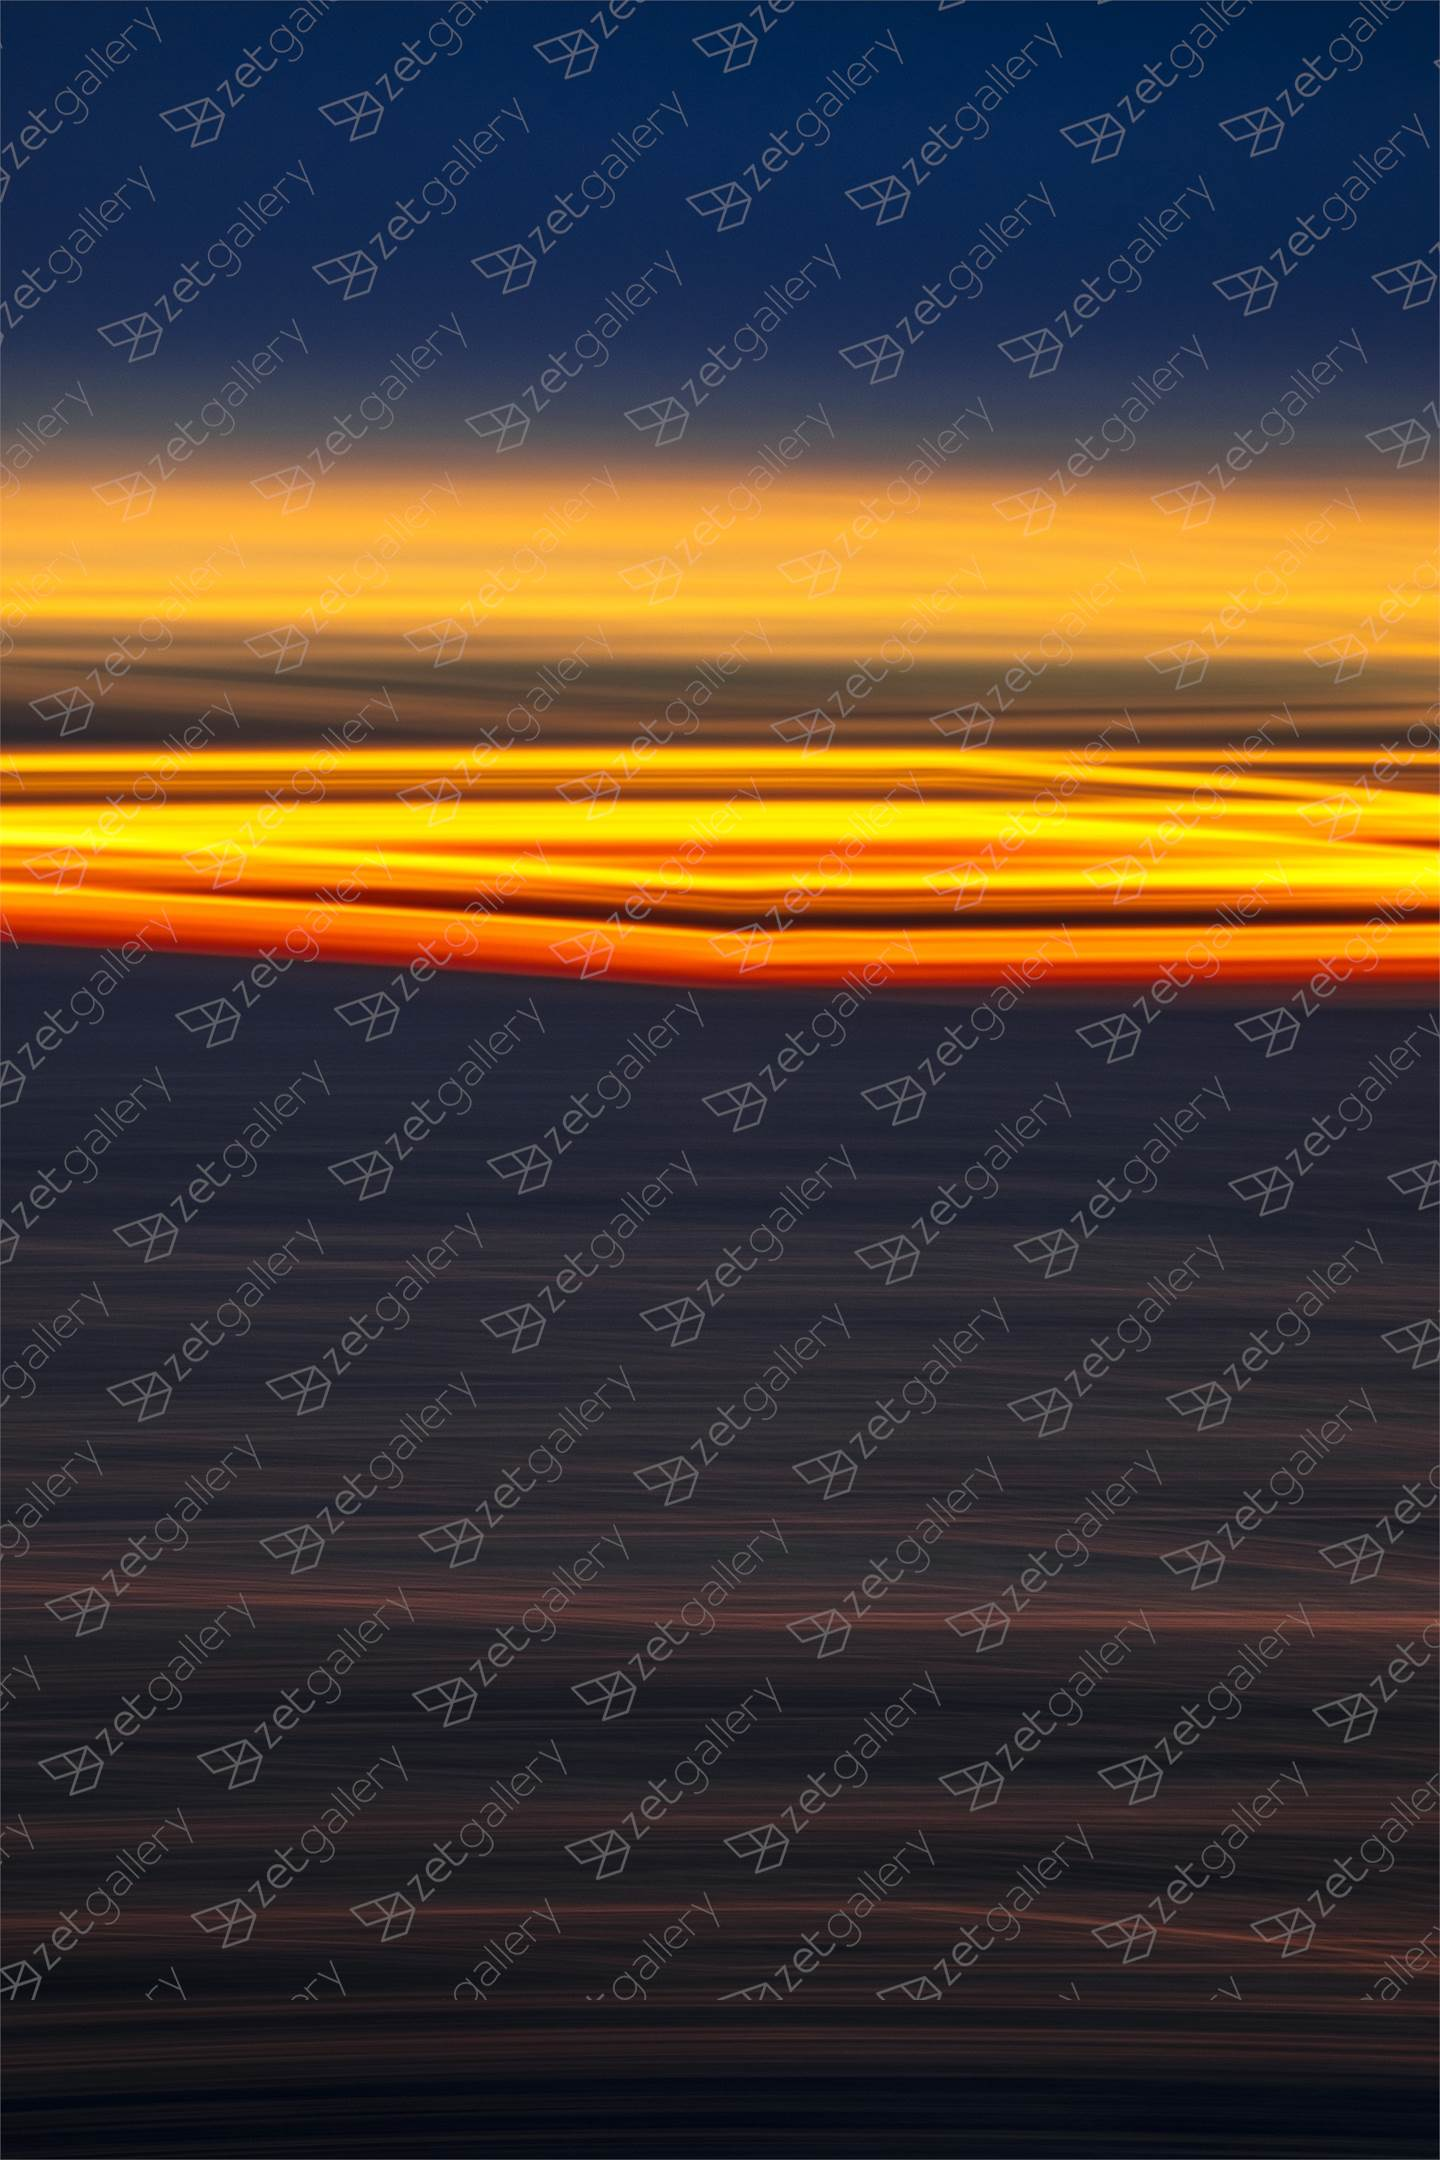 ABSTRACT SUNRISE II, Medium Edition 1 of 10, original Abstract Digital Photography by Benjamin Lurie